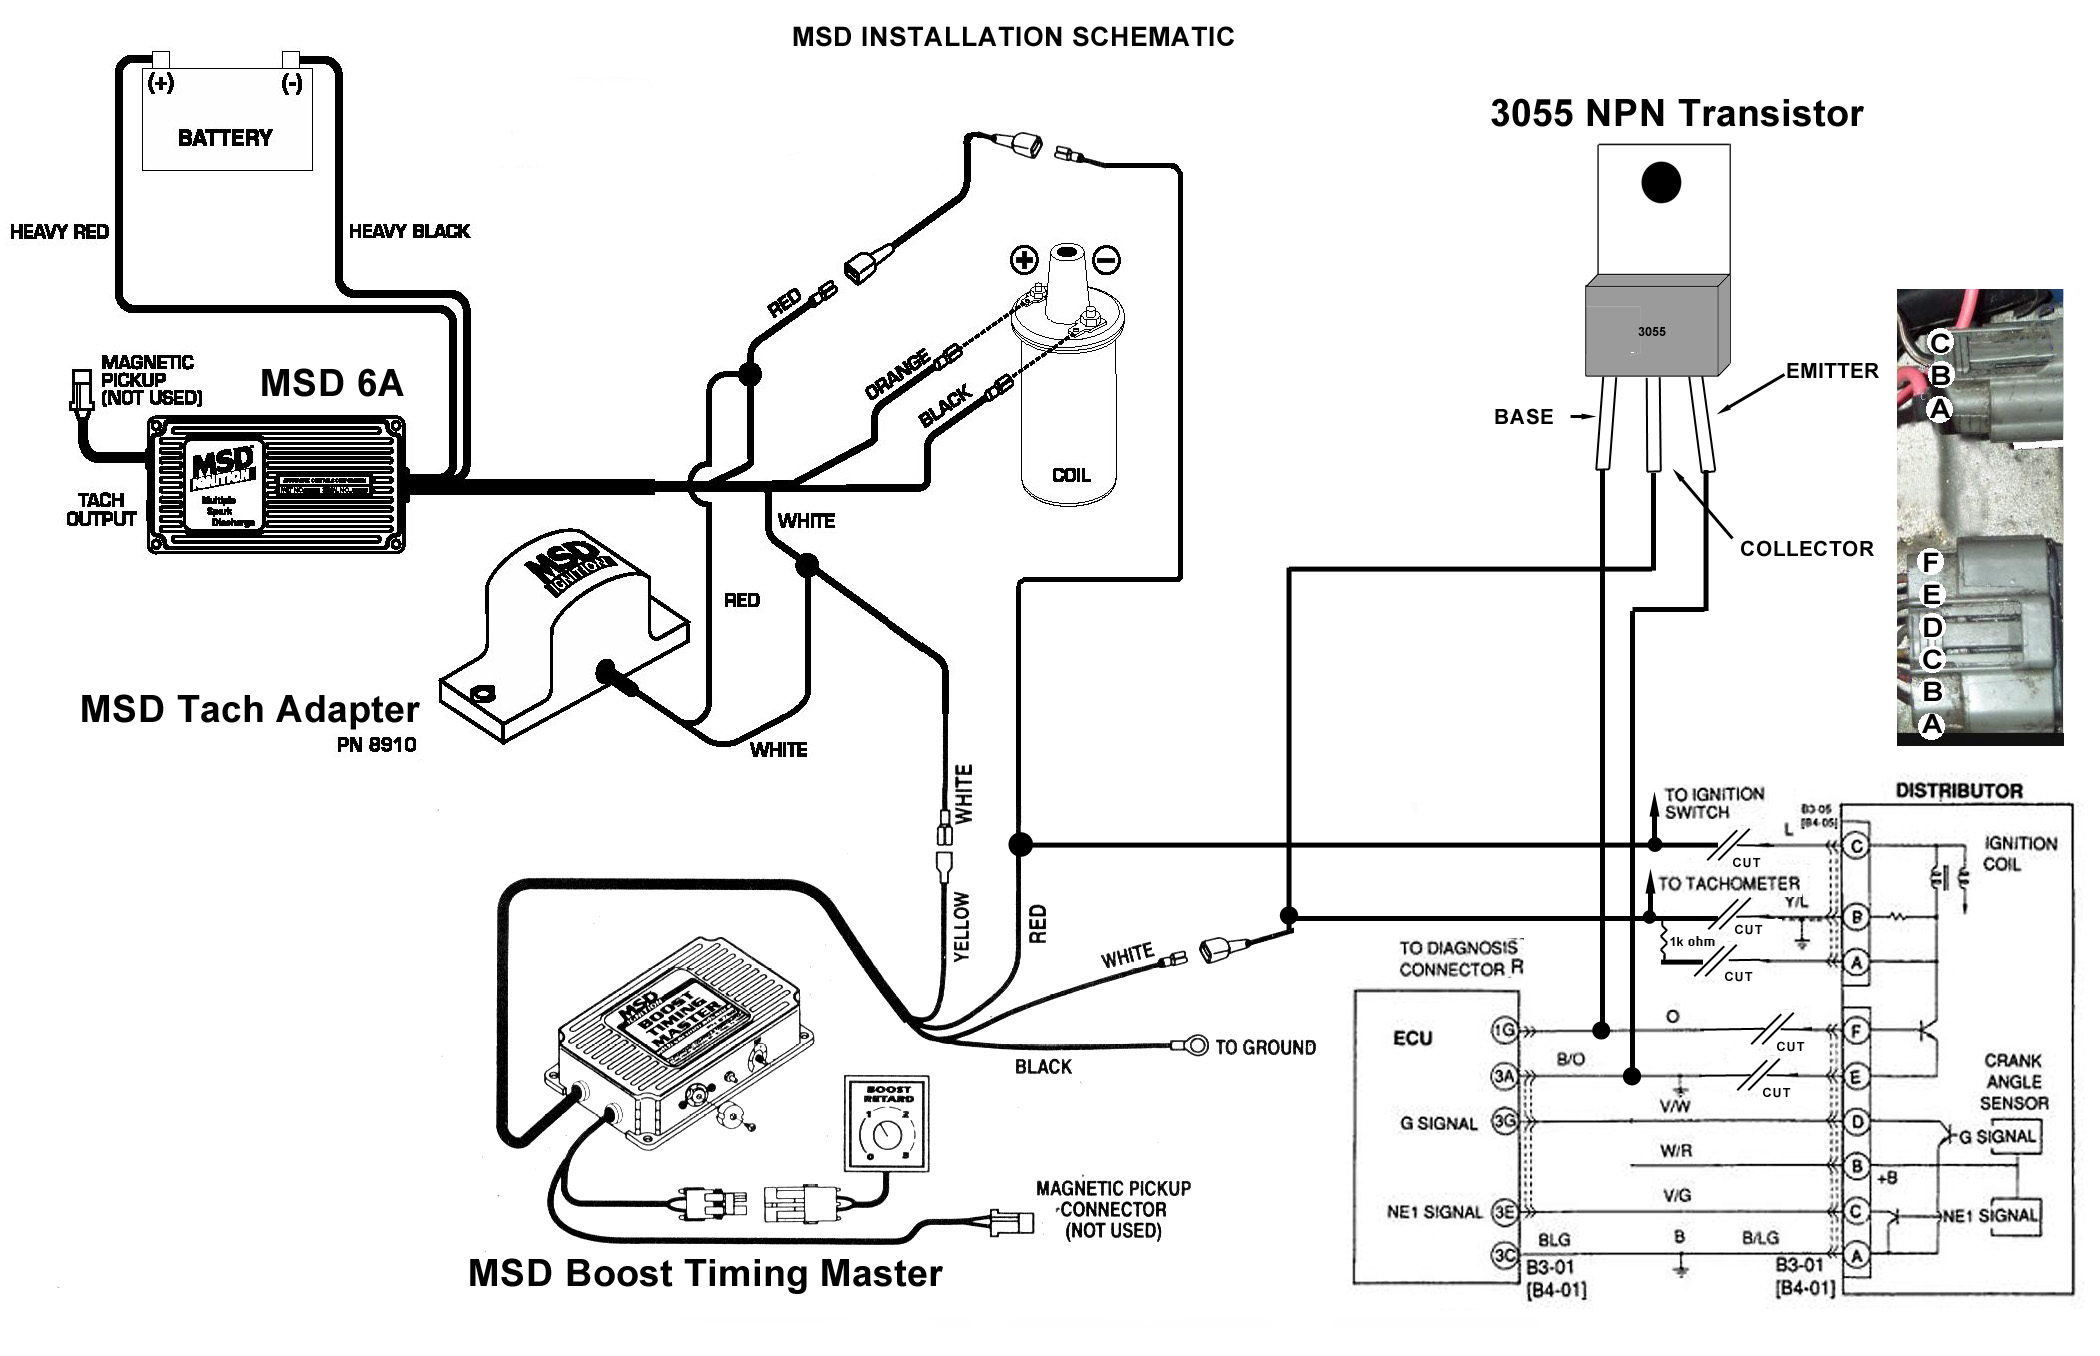 Msd Wirer Diagram